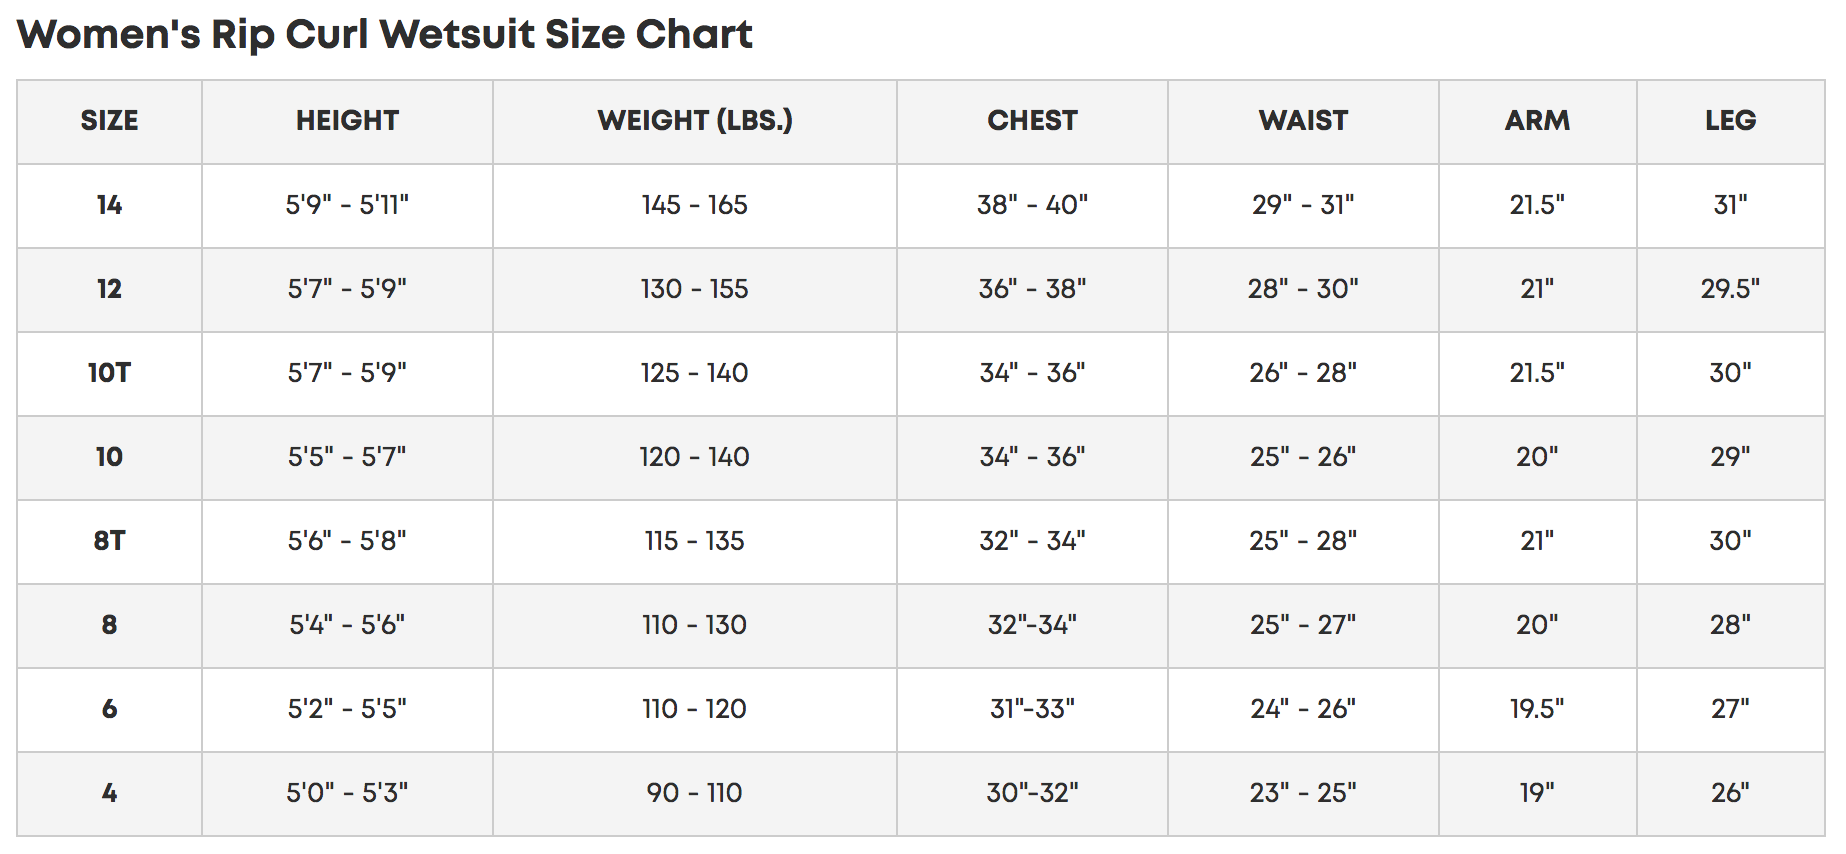 Rip Curl Women's Wetsuit Size Chart